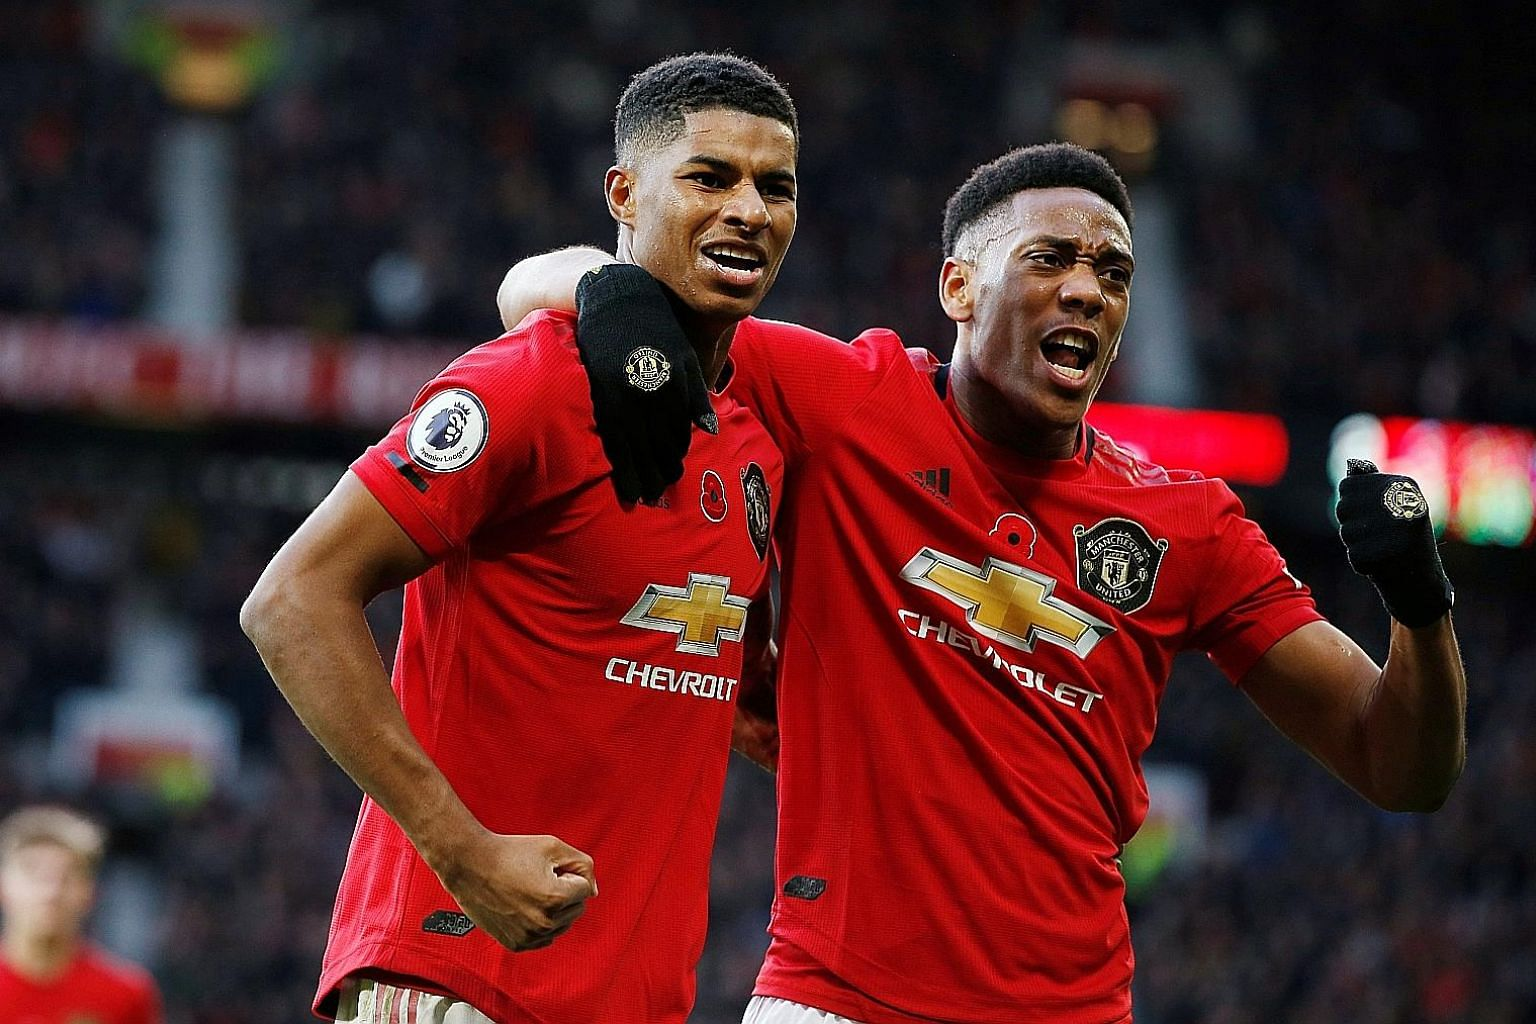 Marcus Rashford (left) celebrating scoring United's third goal in their 3-1 win over Brighton in the Premier League last Sunday with Anthony Martial.